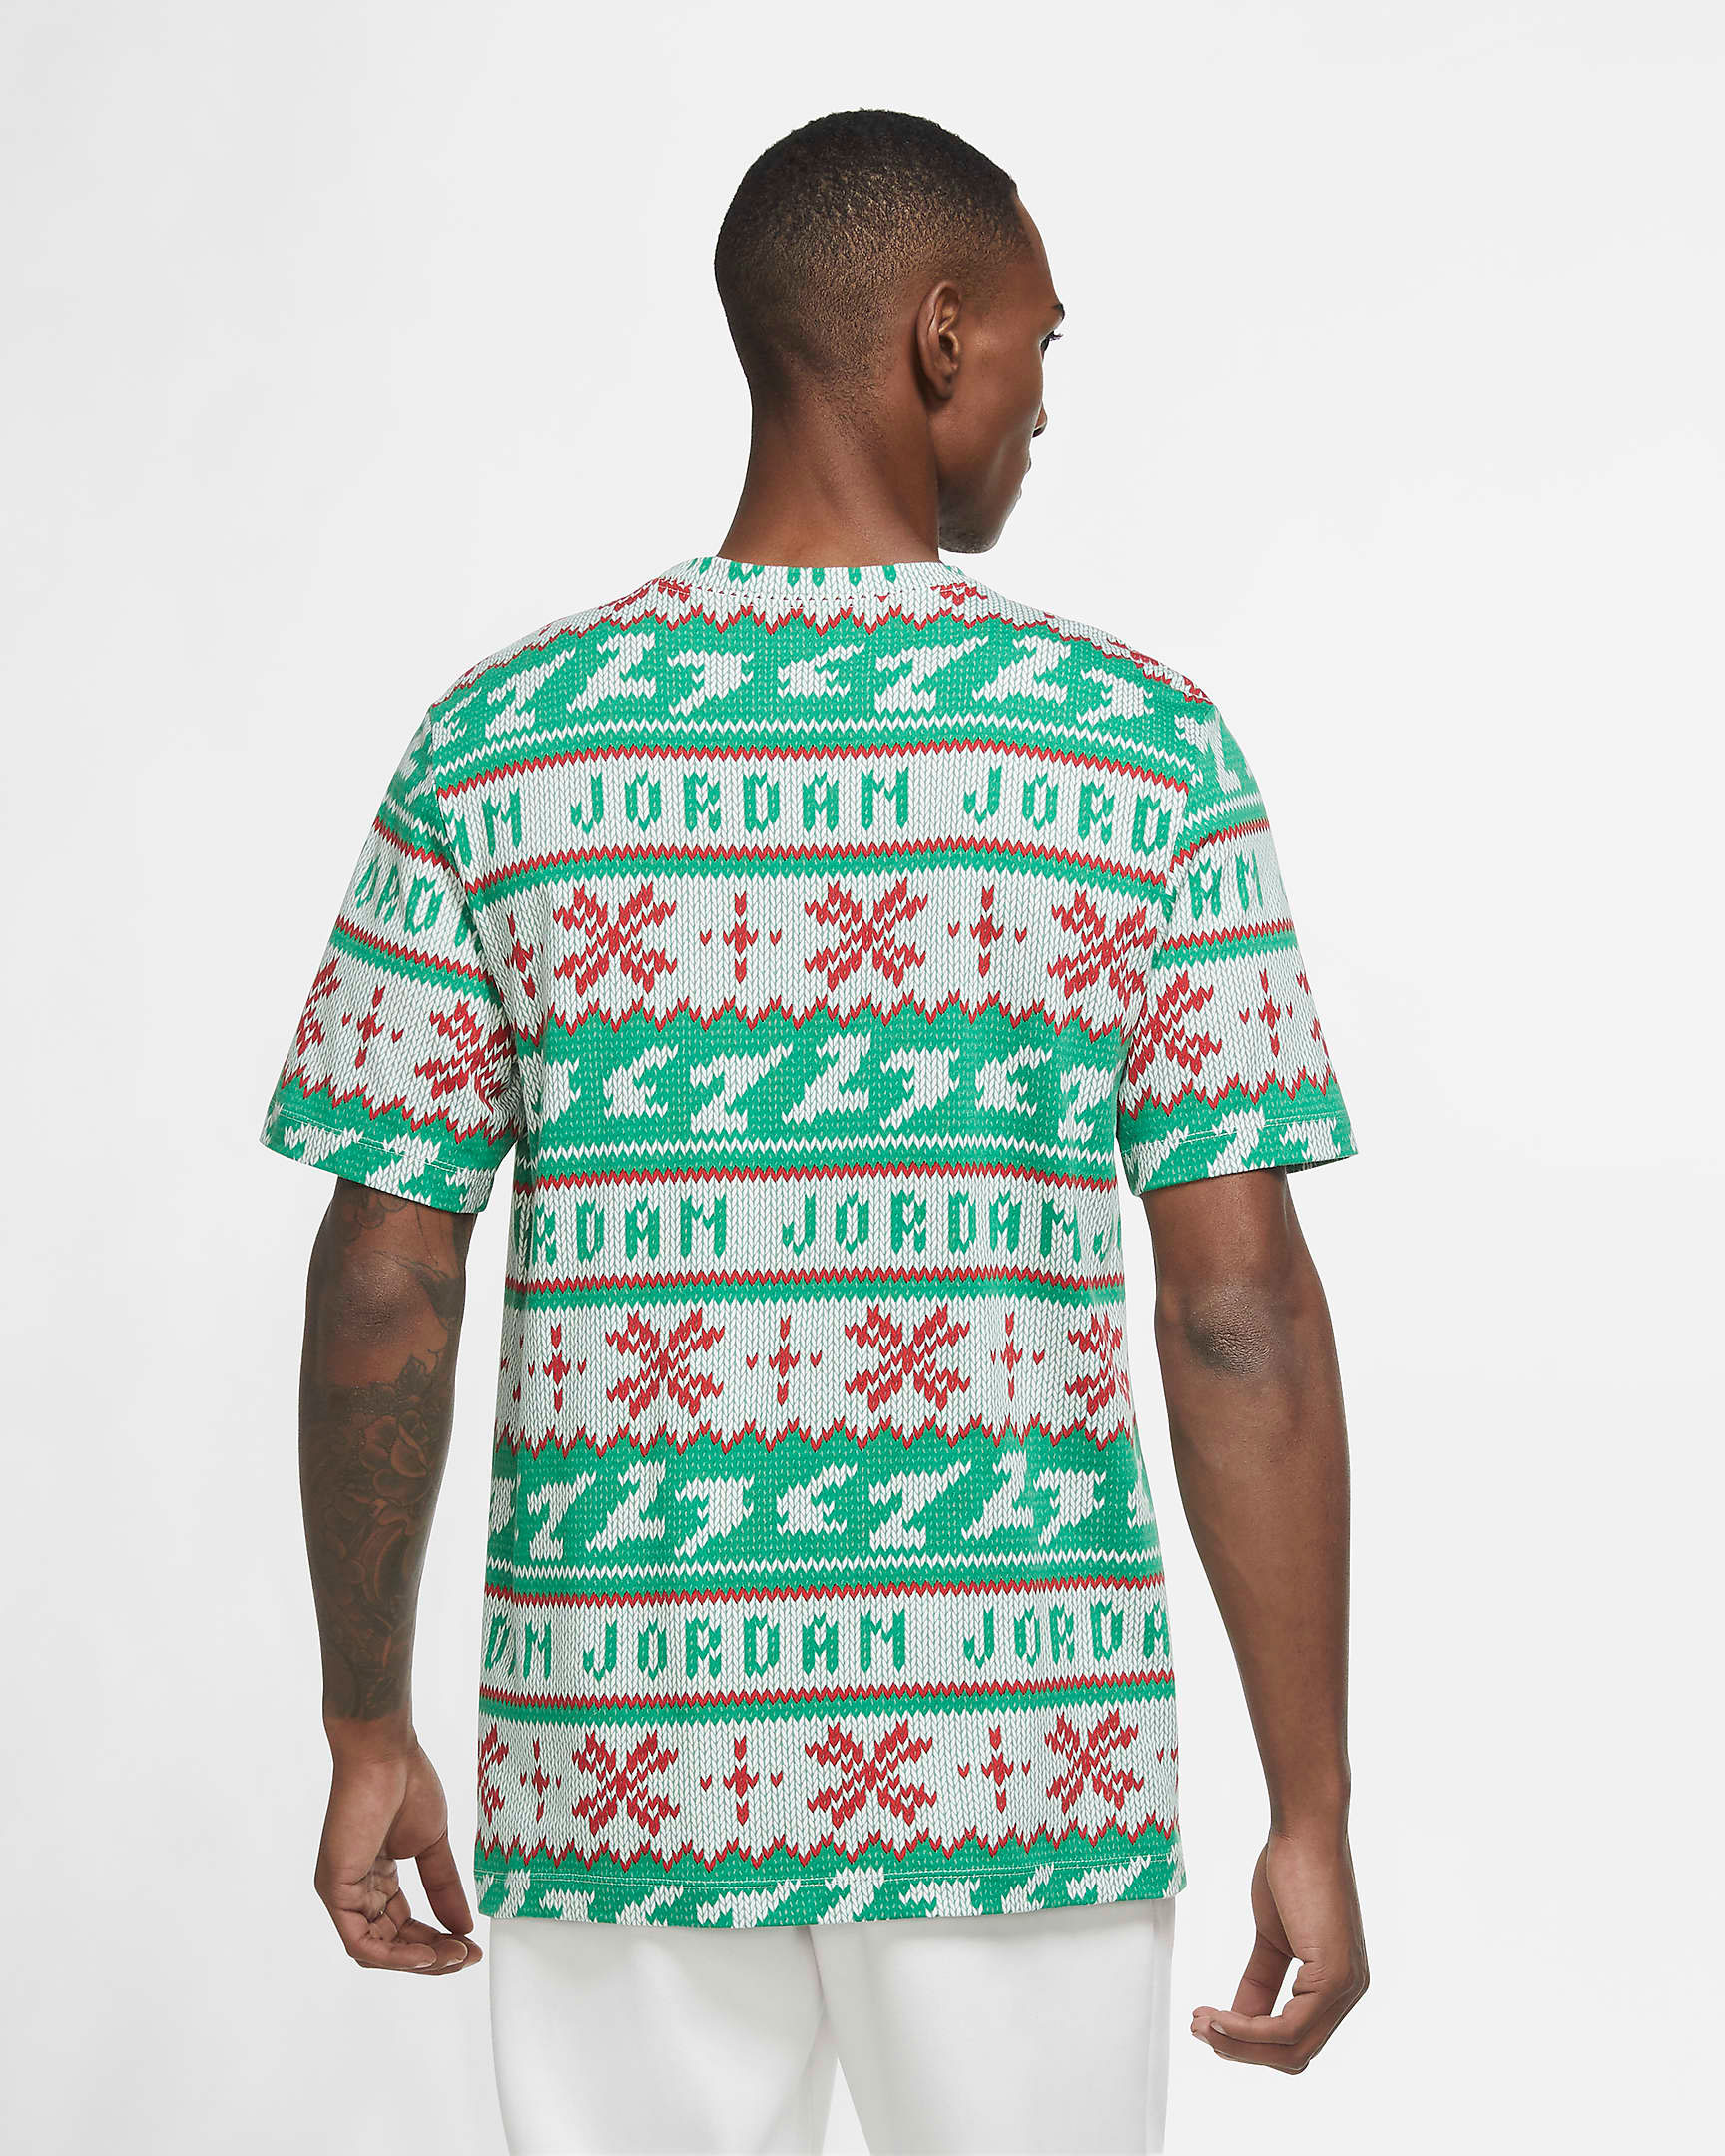 jordan-holiday-ugly-sweater-shirt-green-red-white-2